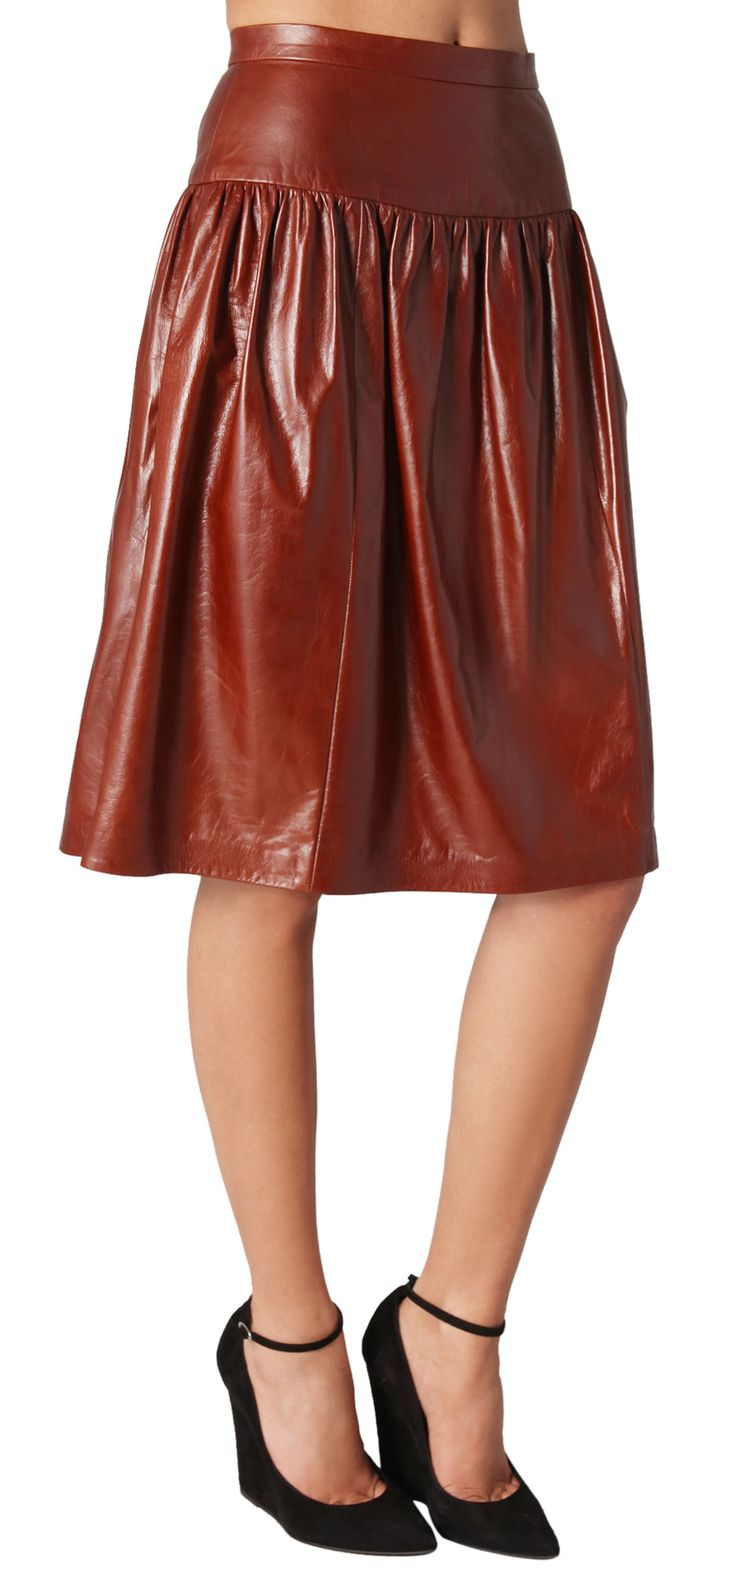 21 best Women Leather Skirt images on Pinterest | Leather skirts ...